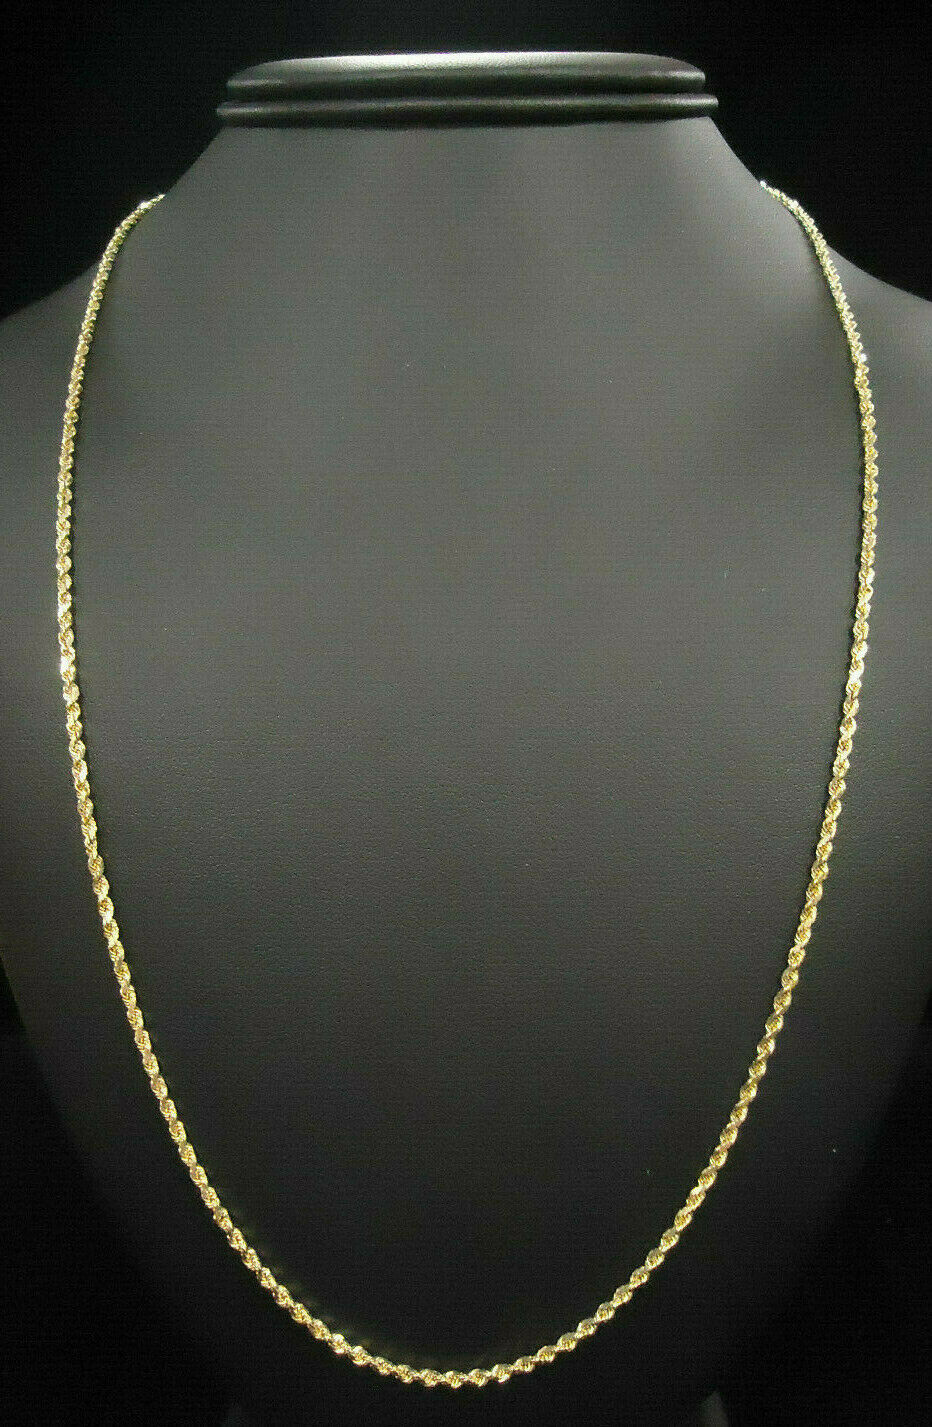 (MA2) 18K Yellow gold Rope Chain - 12.1g - 30.25 in - 1.6mm